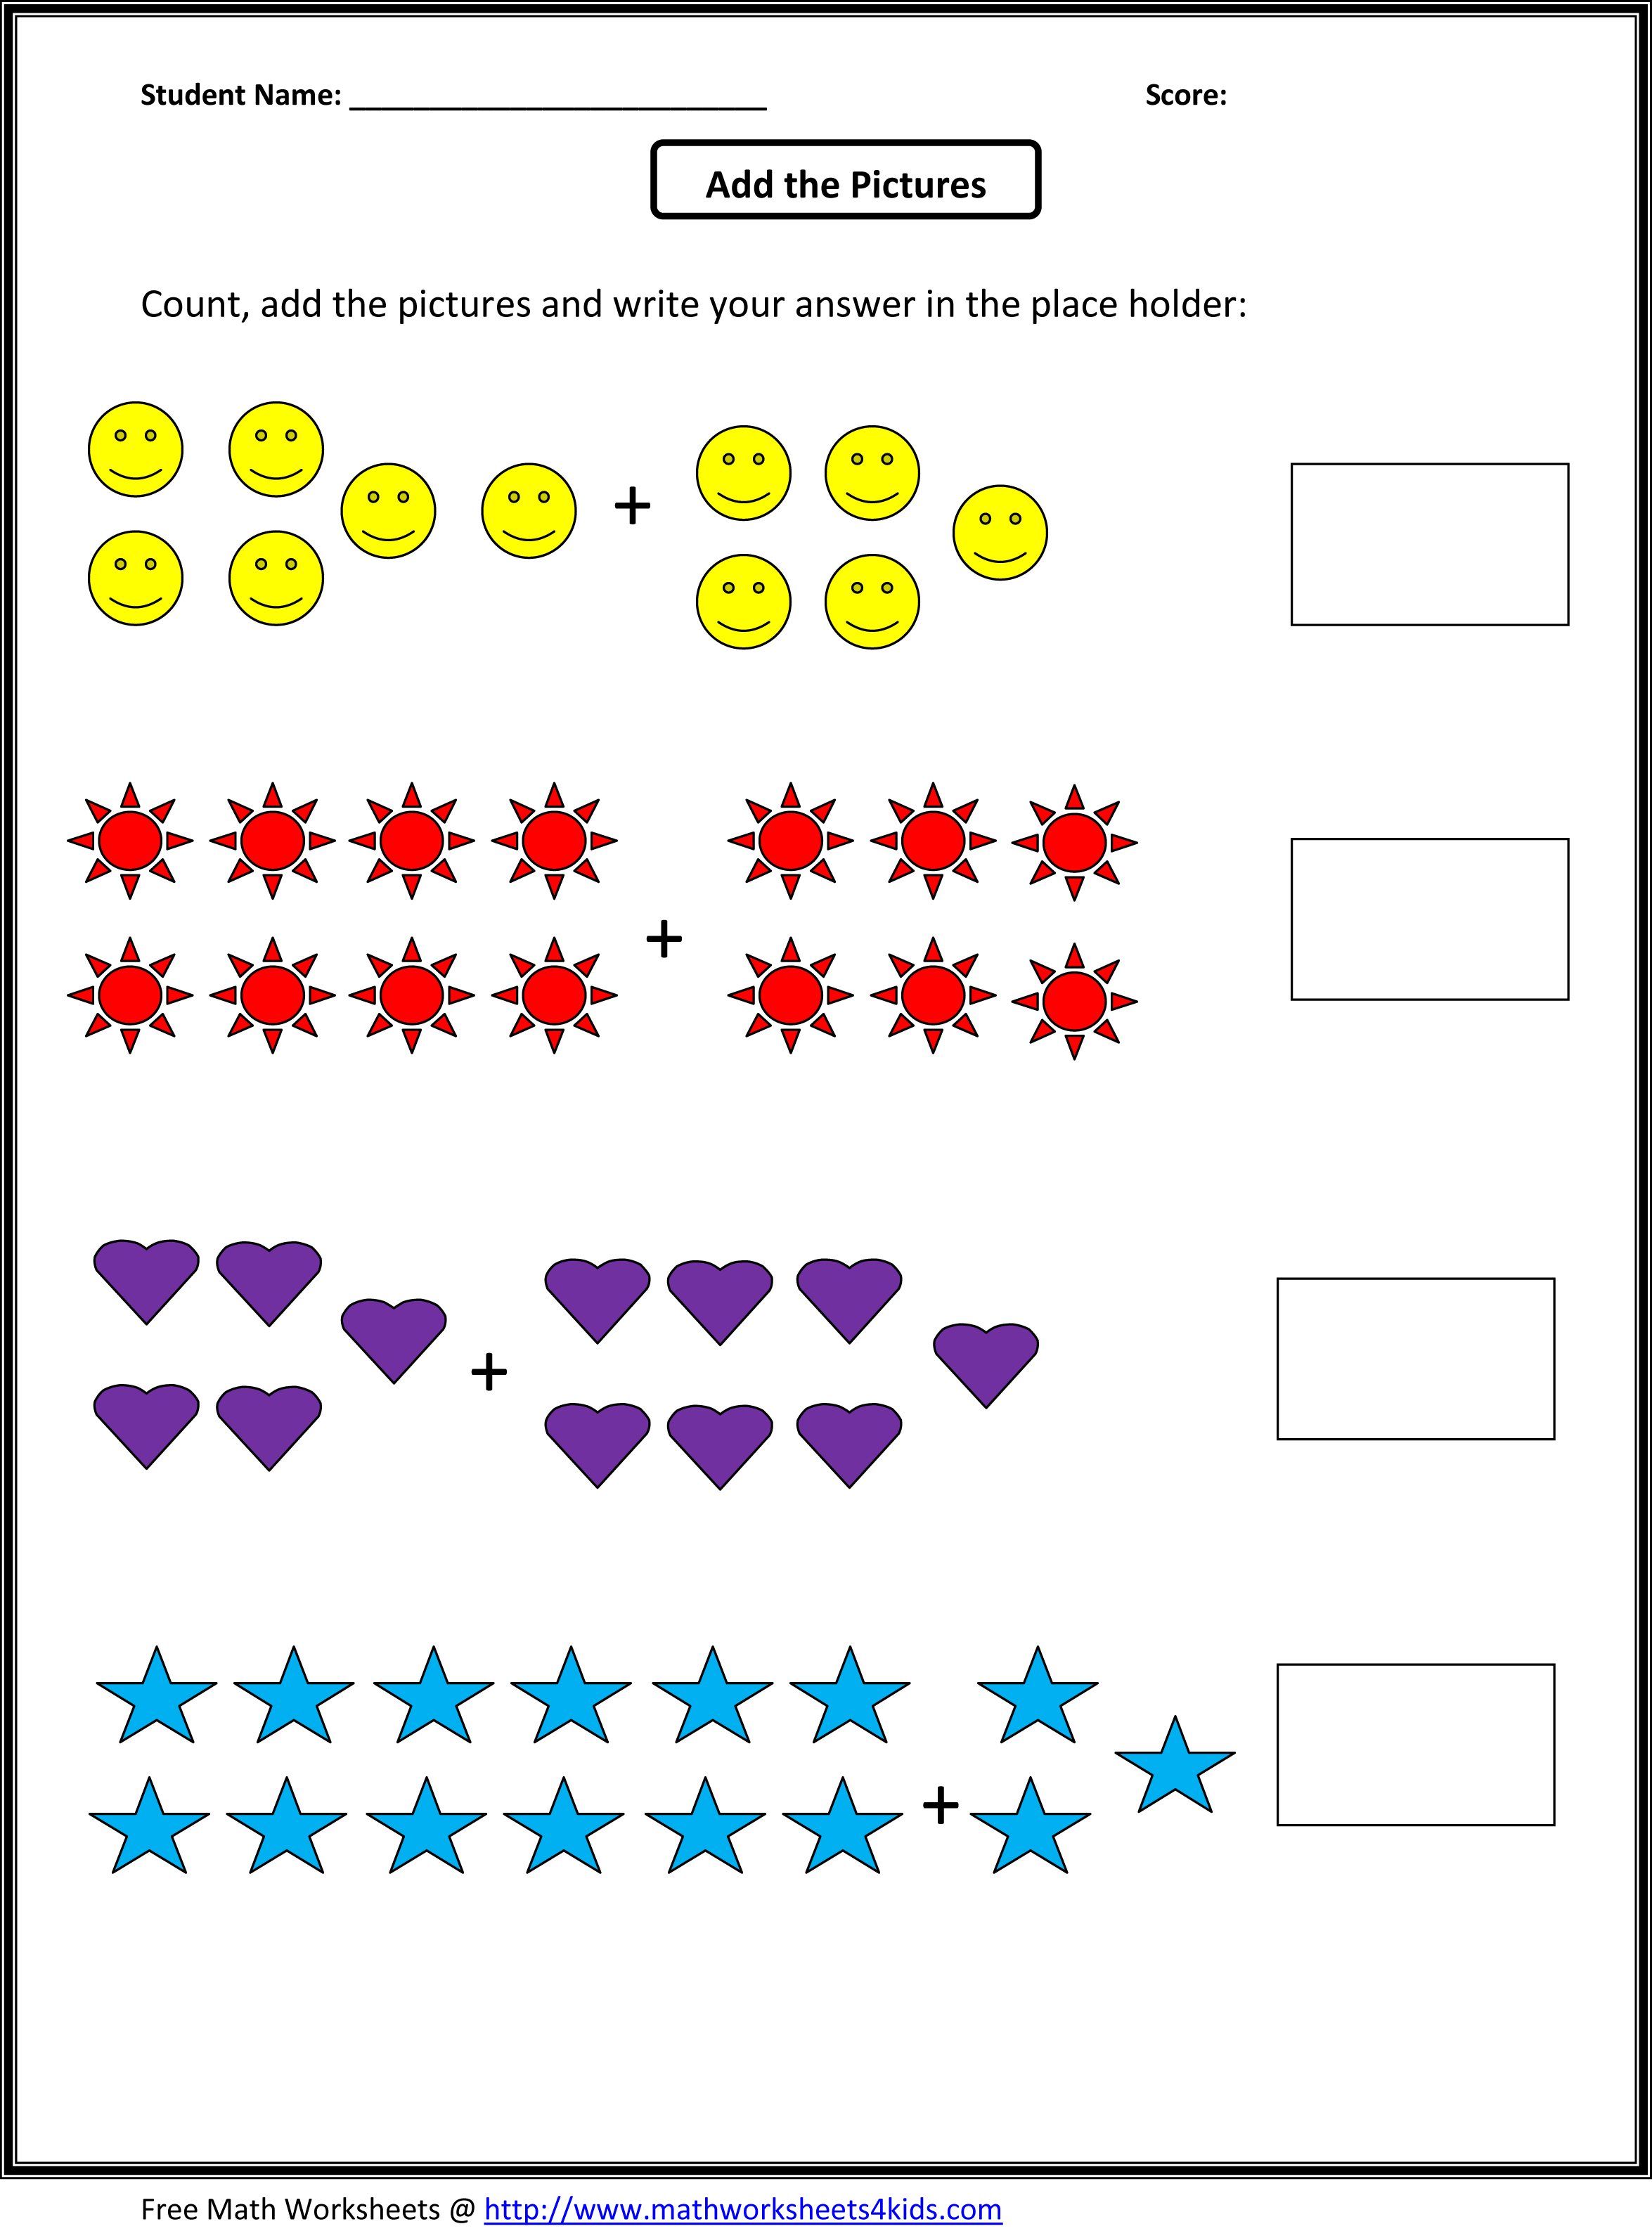 Weirdmailus  Inspiring Grade  Maths Worksheet  Reocurent With Licious Math Worksheets For St Grade Free  Reocurent With Nice Respiration Worksheet Also Probability Worksheet  Compound In Addition Evaluating Exponents Worksheet And Worksheets For Kindergarten English Free As Well As Worksheet  Dna Replication Additionally Steps Of The Writing Process Worksheet From Reocurentcom With Weirdmailus  Licious Grade  Maths Worksheet  Reocurent With Nice Math Worksheets For St Grade Free  Reocurent And Inspiring Respiration Worksheet Also Probability Worksheet  Compound In Addition Evaluating Exponents Worksheet From Reocurentcom